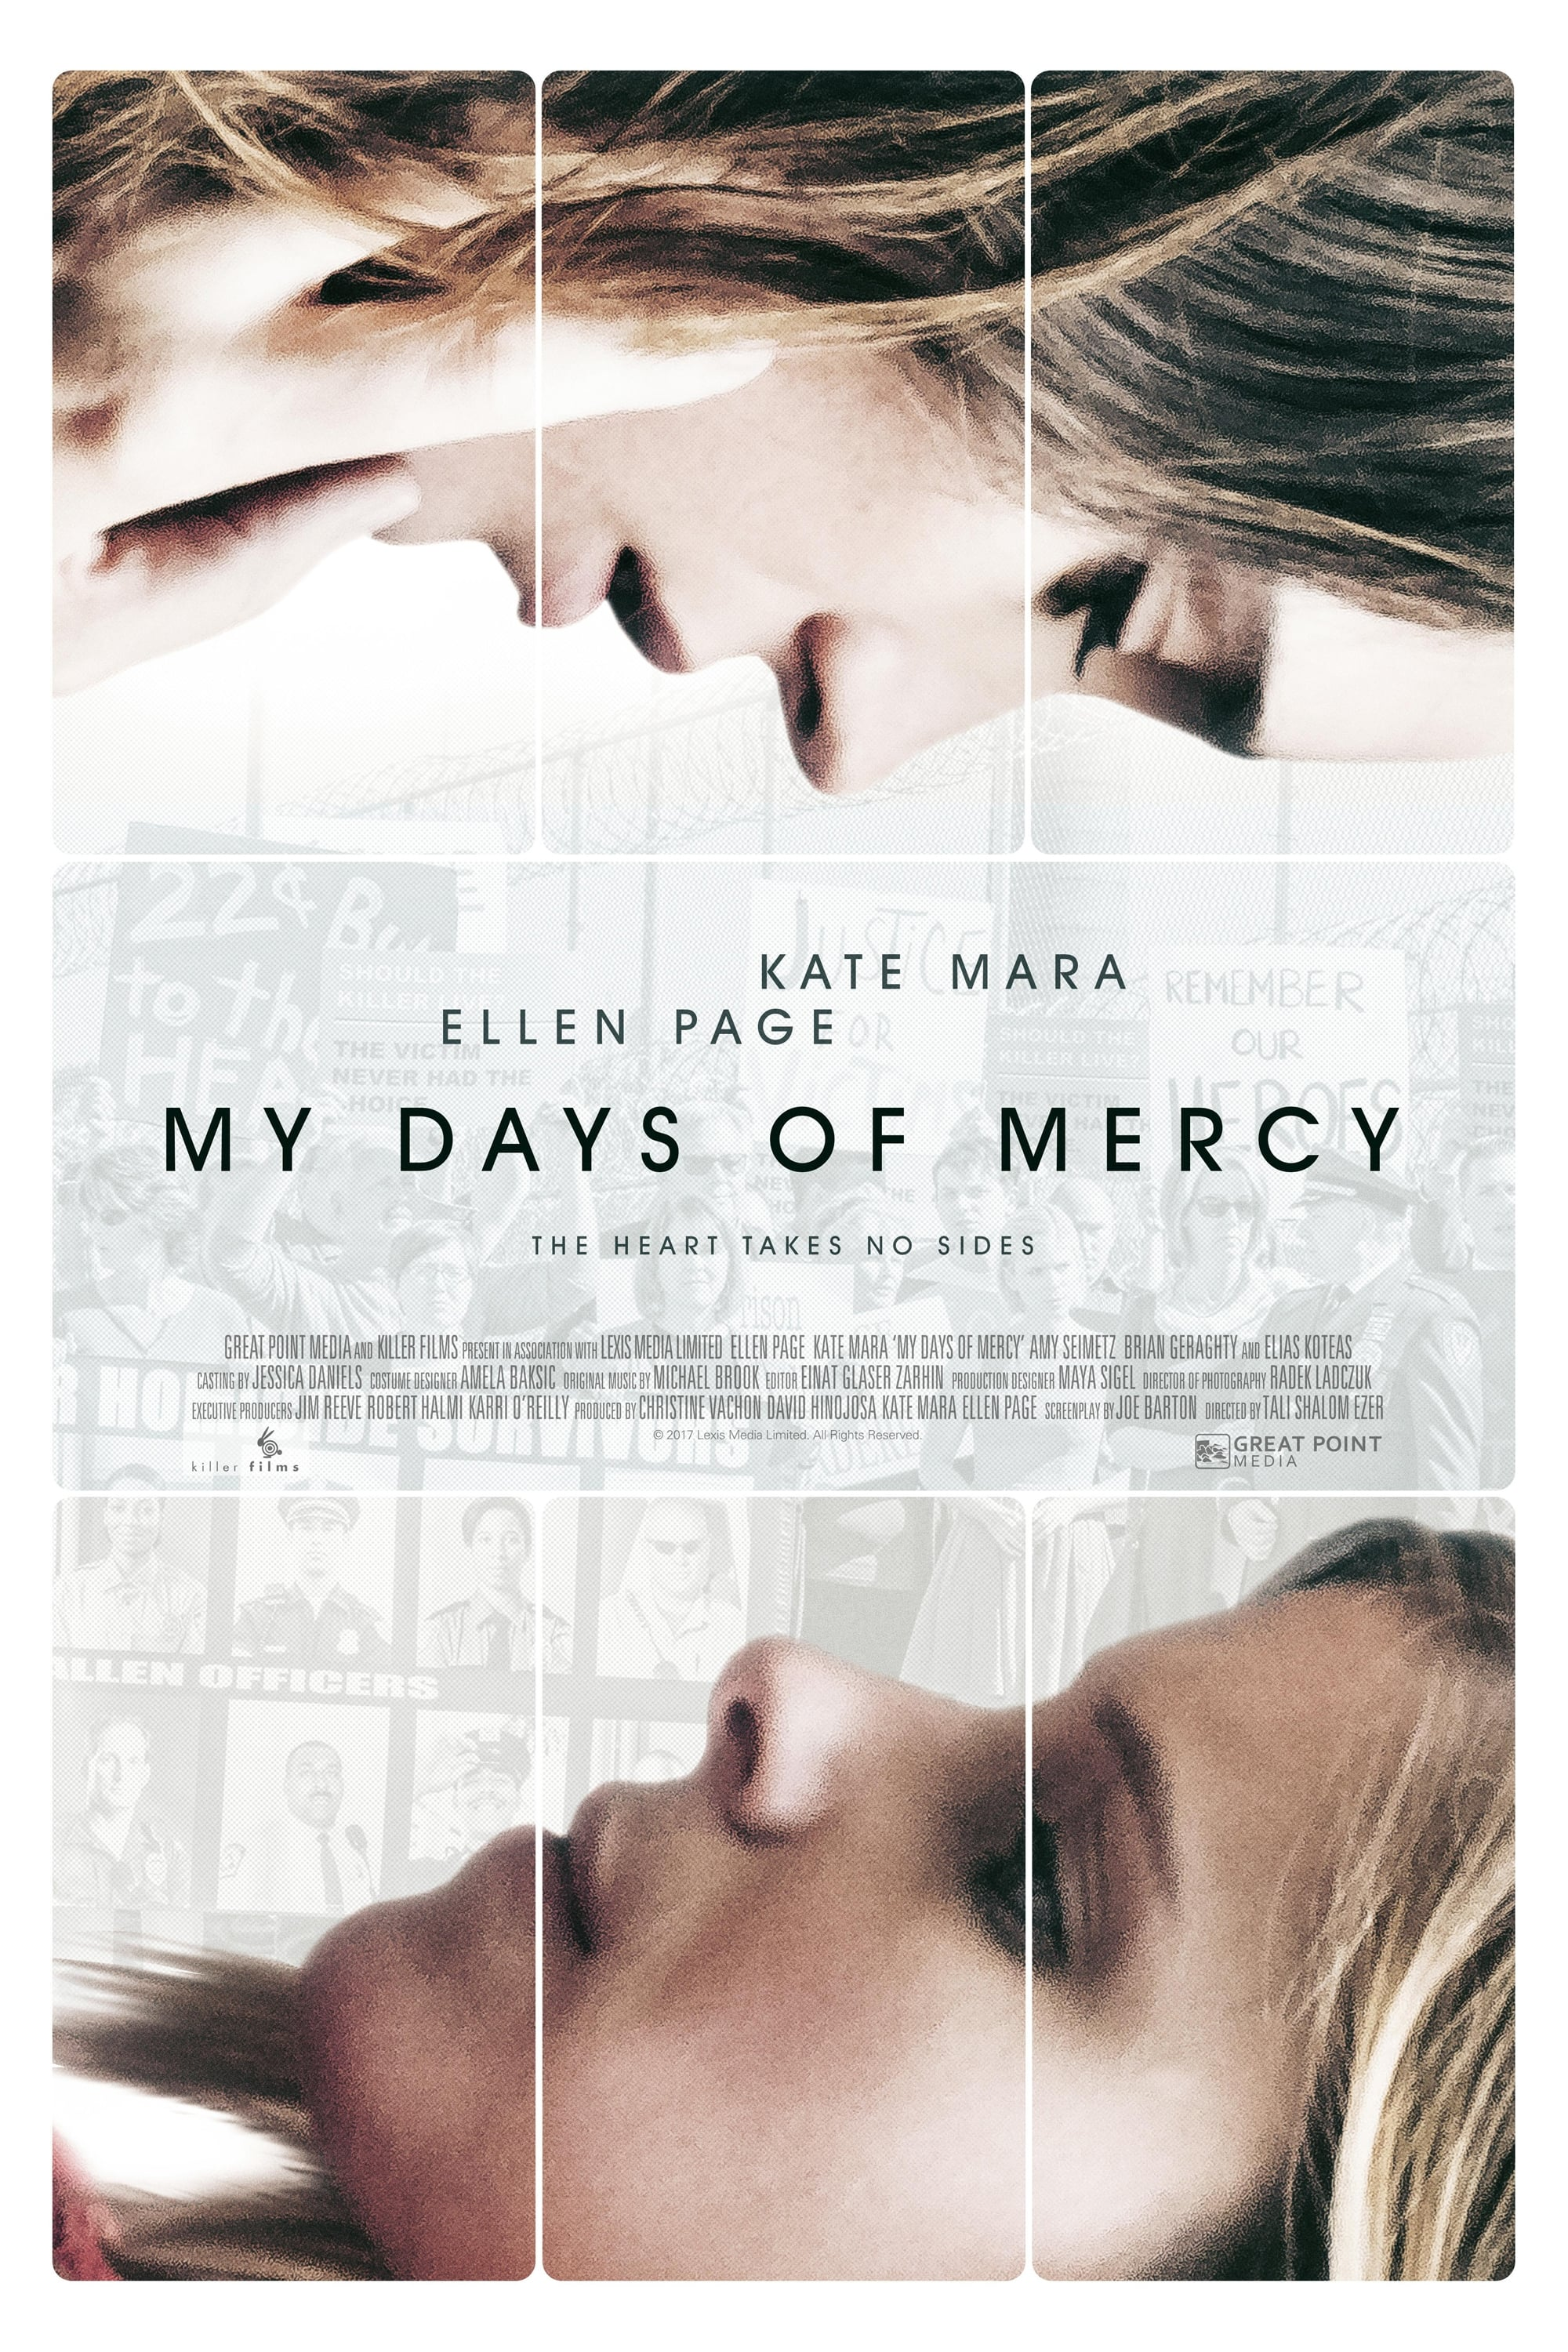 watch my days of mercy 2017 online free 123moviesv. Black Bedroom Furniture Sets. Home Design Ideas